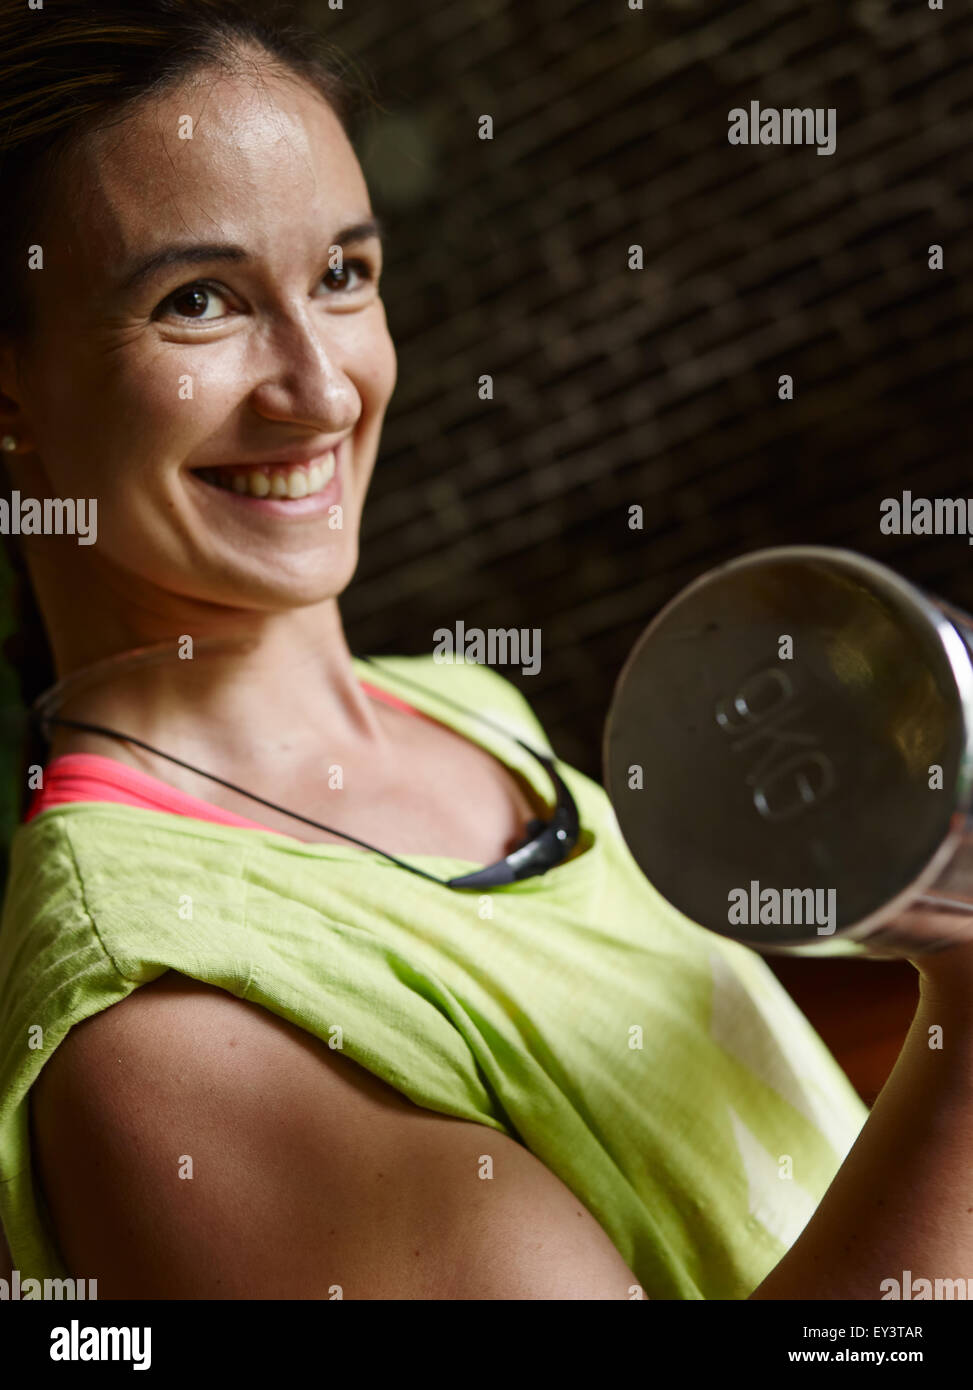 Young woman takes care of his health and she use dumbbell, intentional motion blur and narrow field of depth - Stock Image